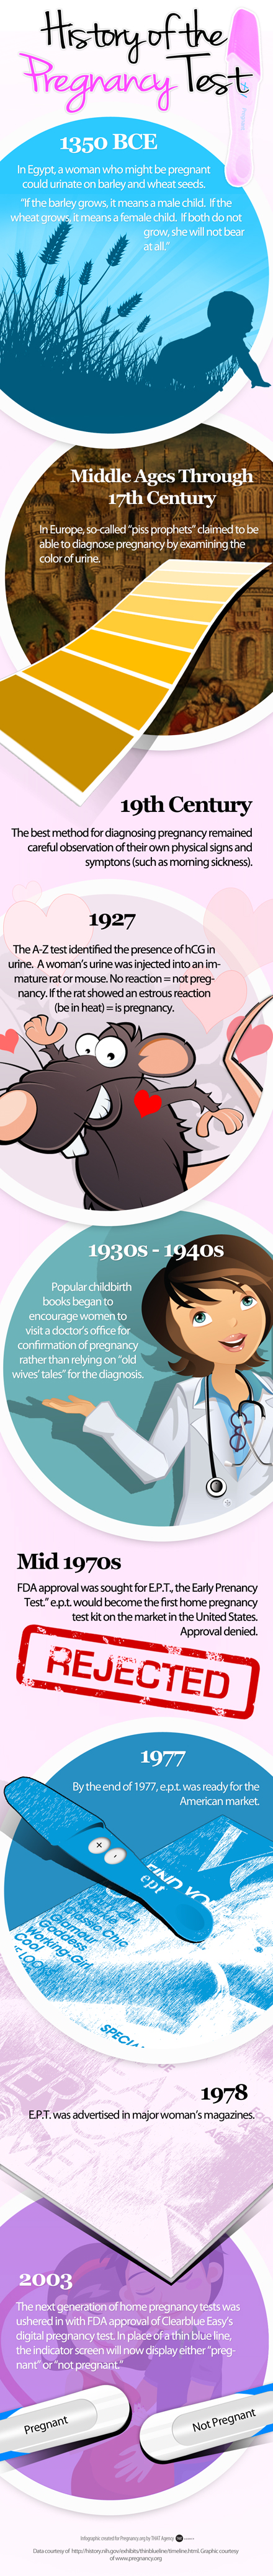 Pregnancy.Org-History-of-Pregnancy-Info-GFX